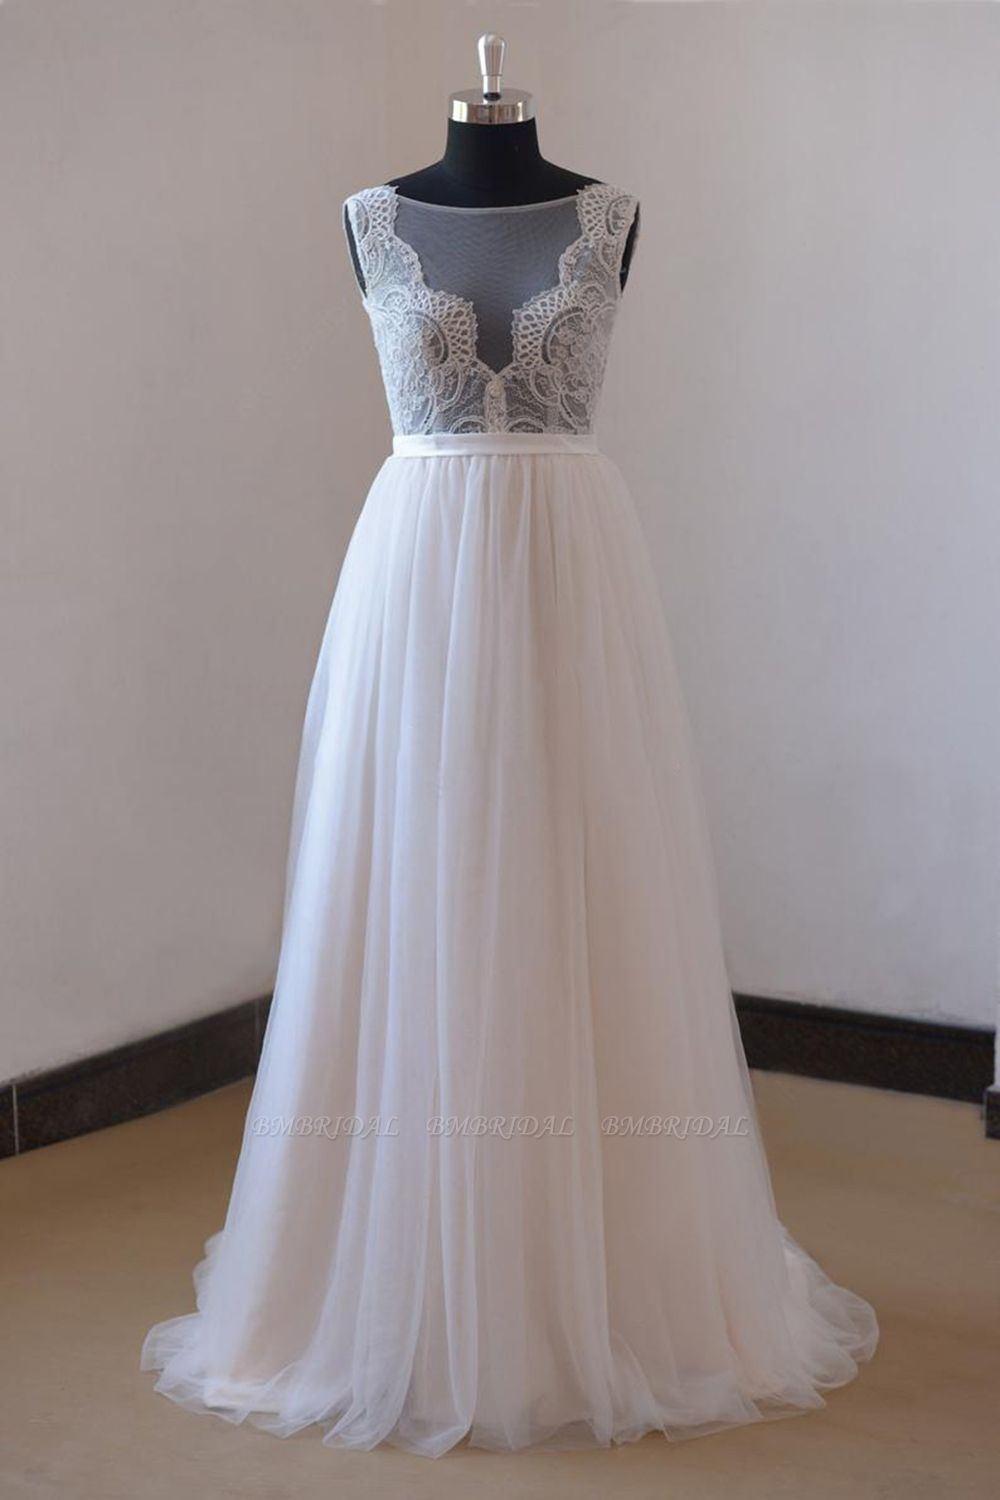 BMbridal Affordable Appliques Tulle Sleeveless Wedding Dress White A-line Jewel Bridal Gowns On Sale